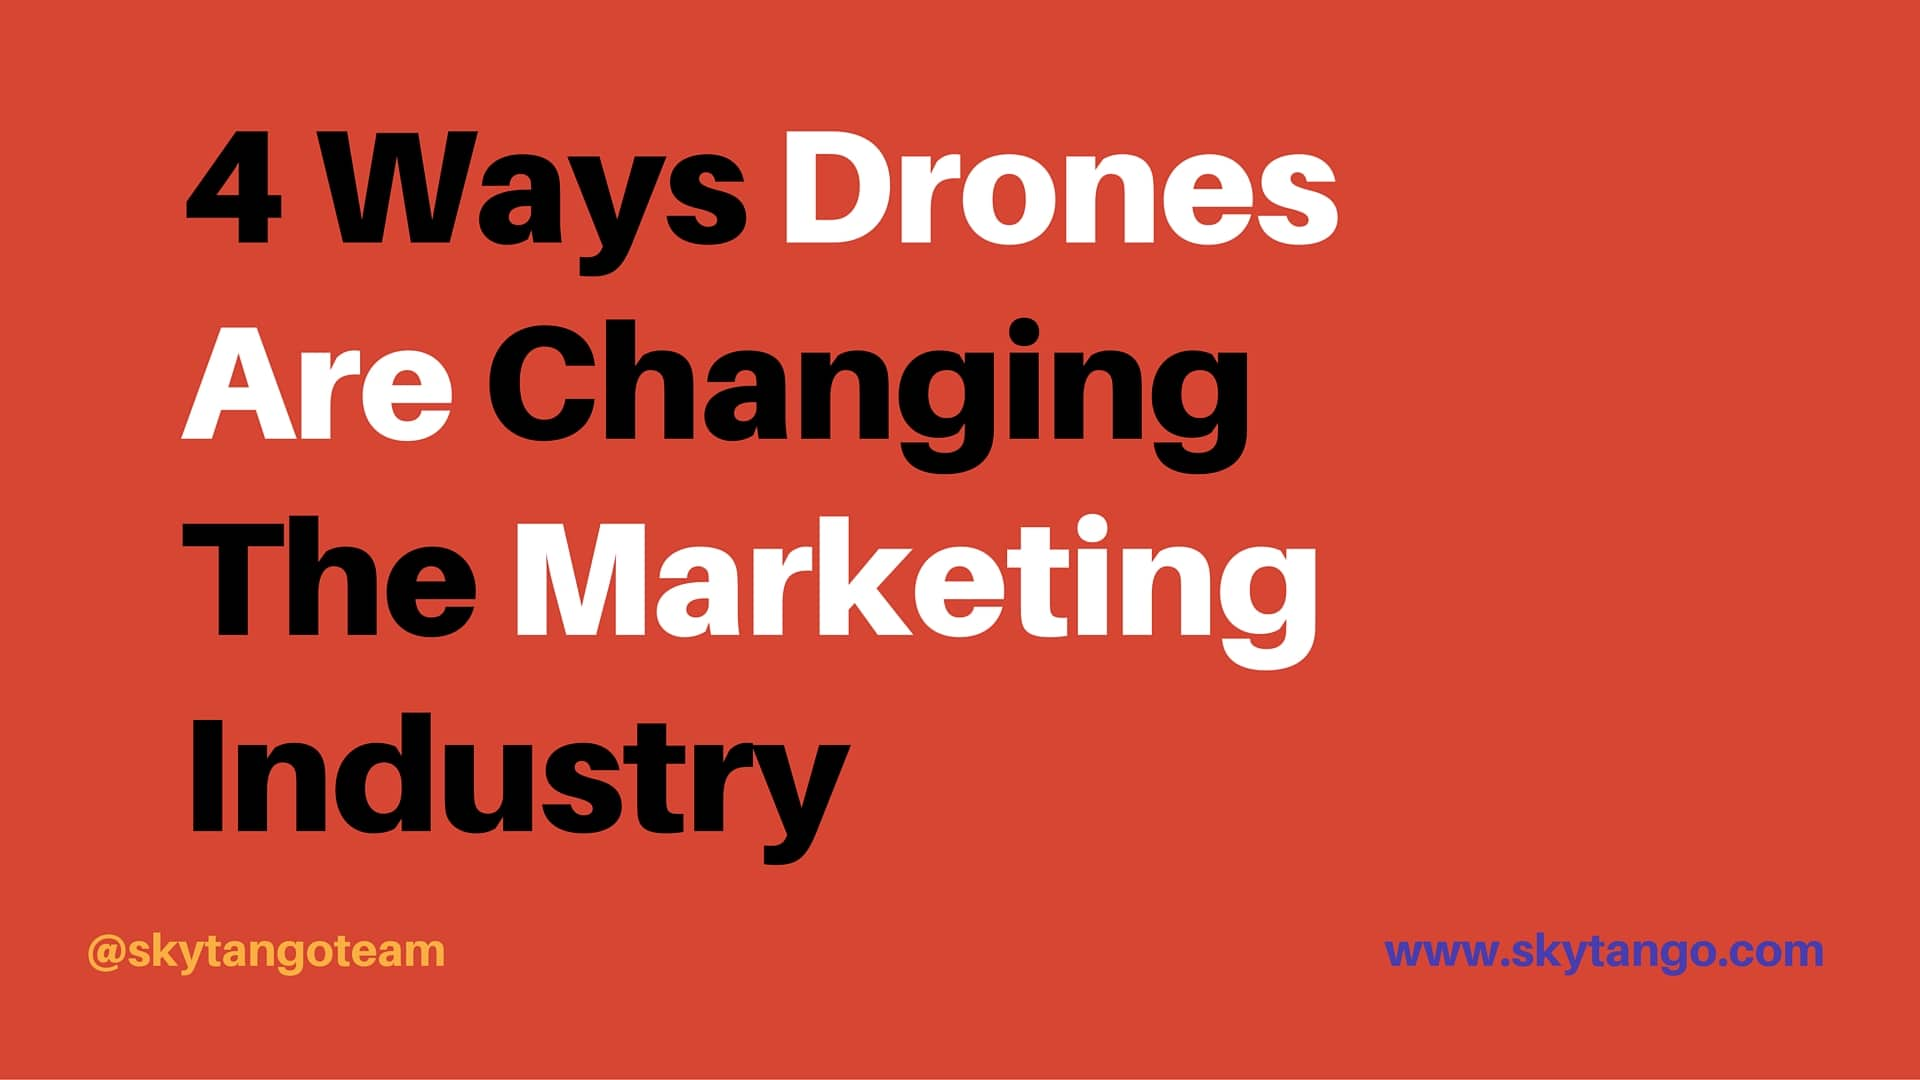 4 Ways Drones Are Changing The Marketing Industry